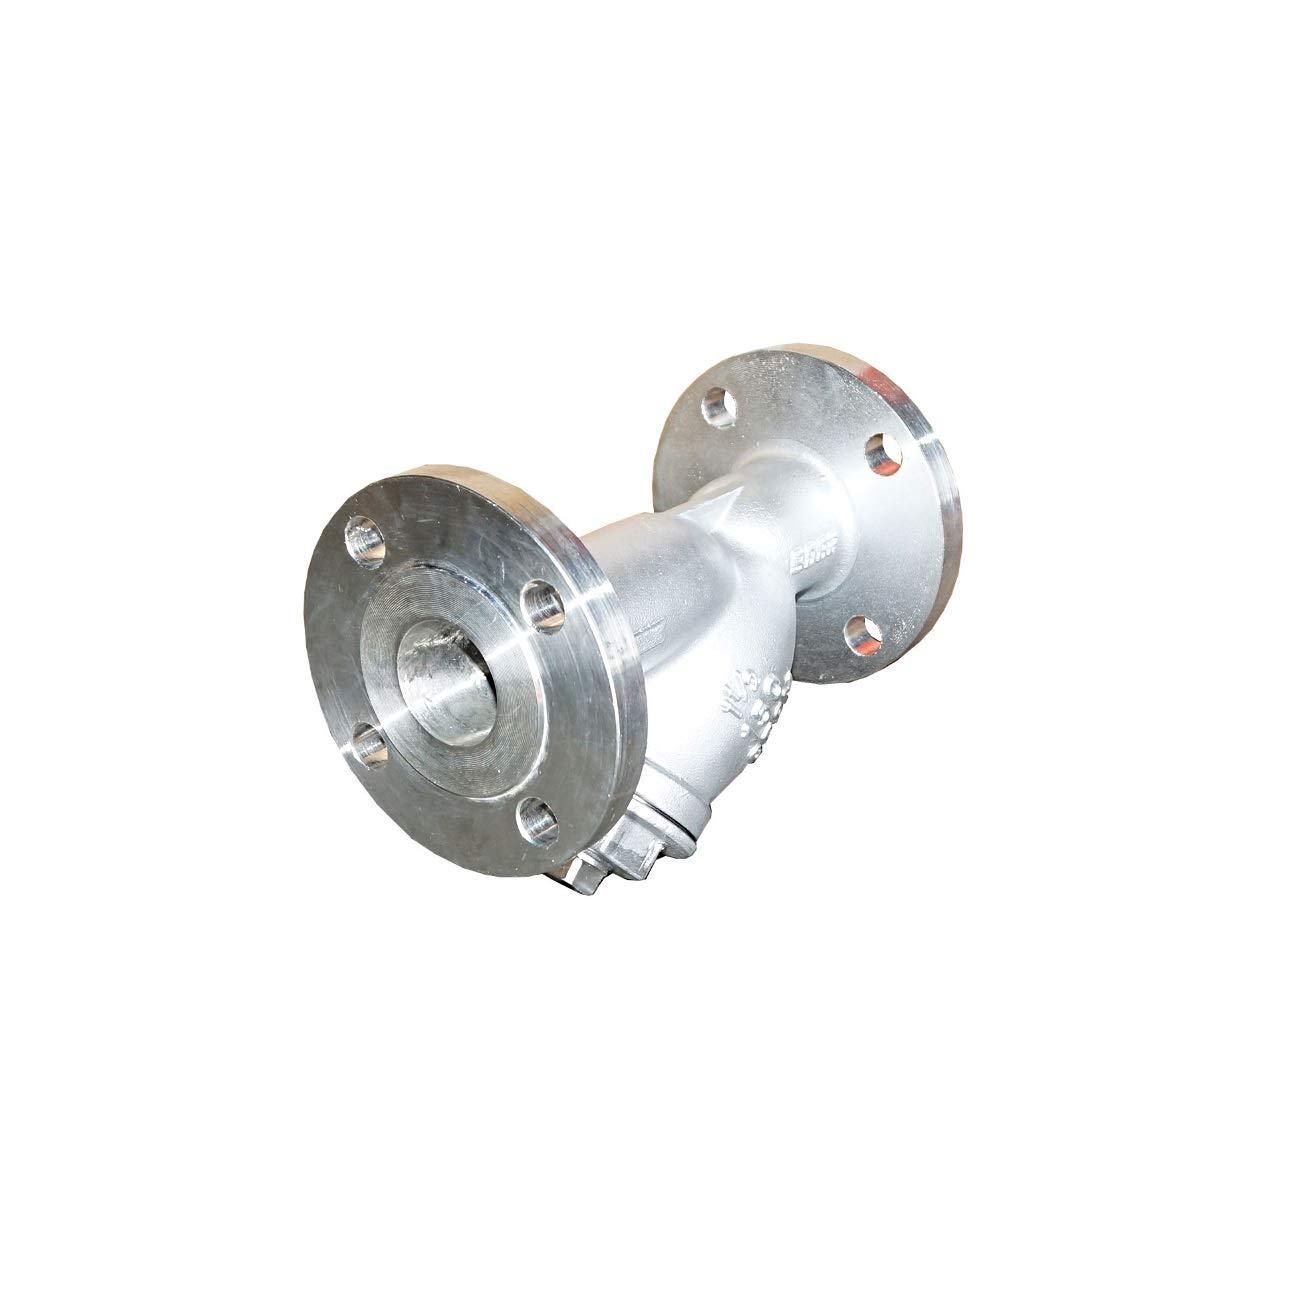 with Mesh Size 1.0MM 1 1//2 Flange End Y-Strainer ANSI 150# Type Stainless Steel SS316 Material